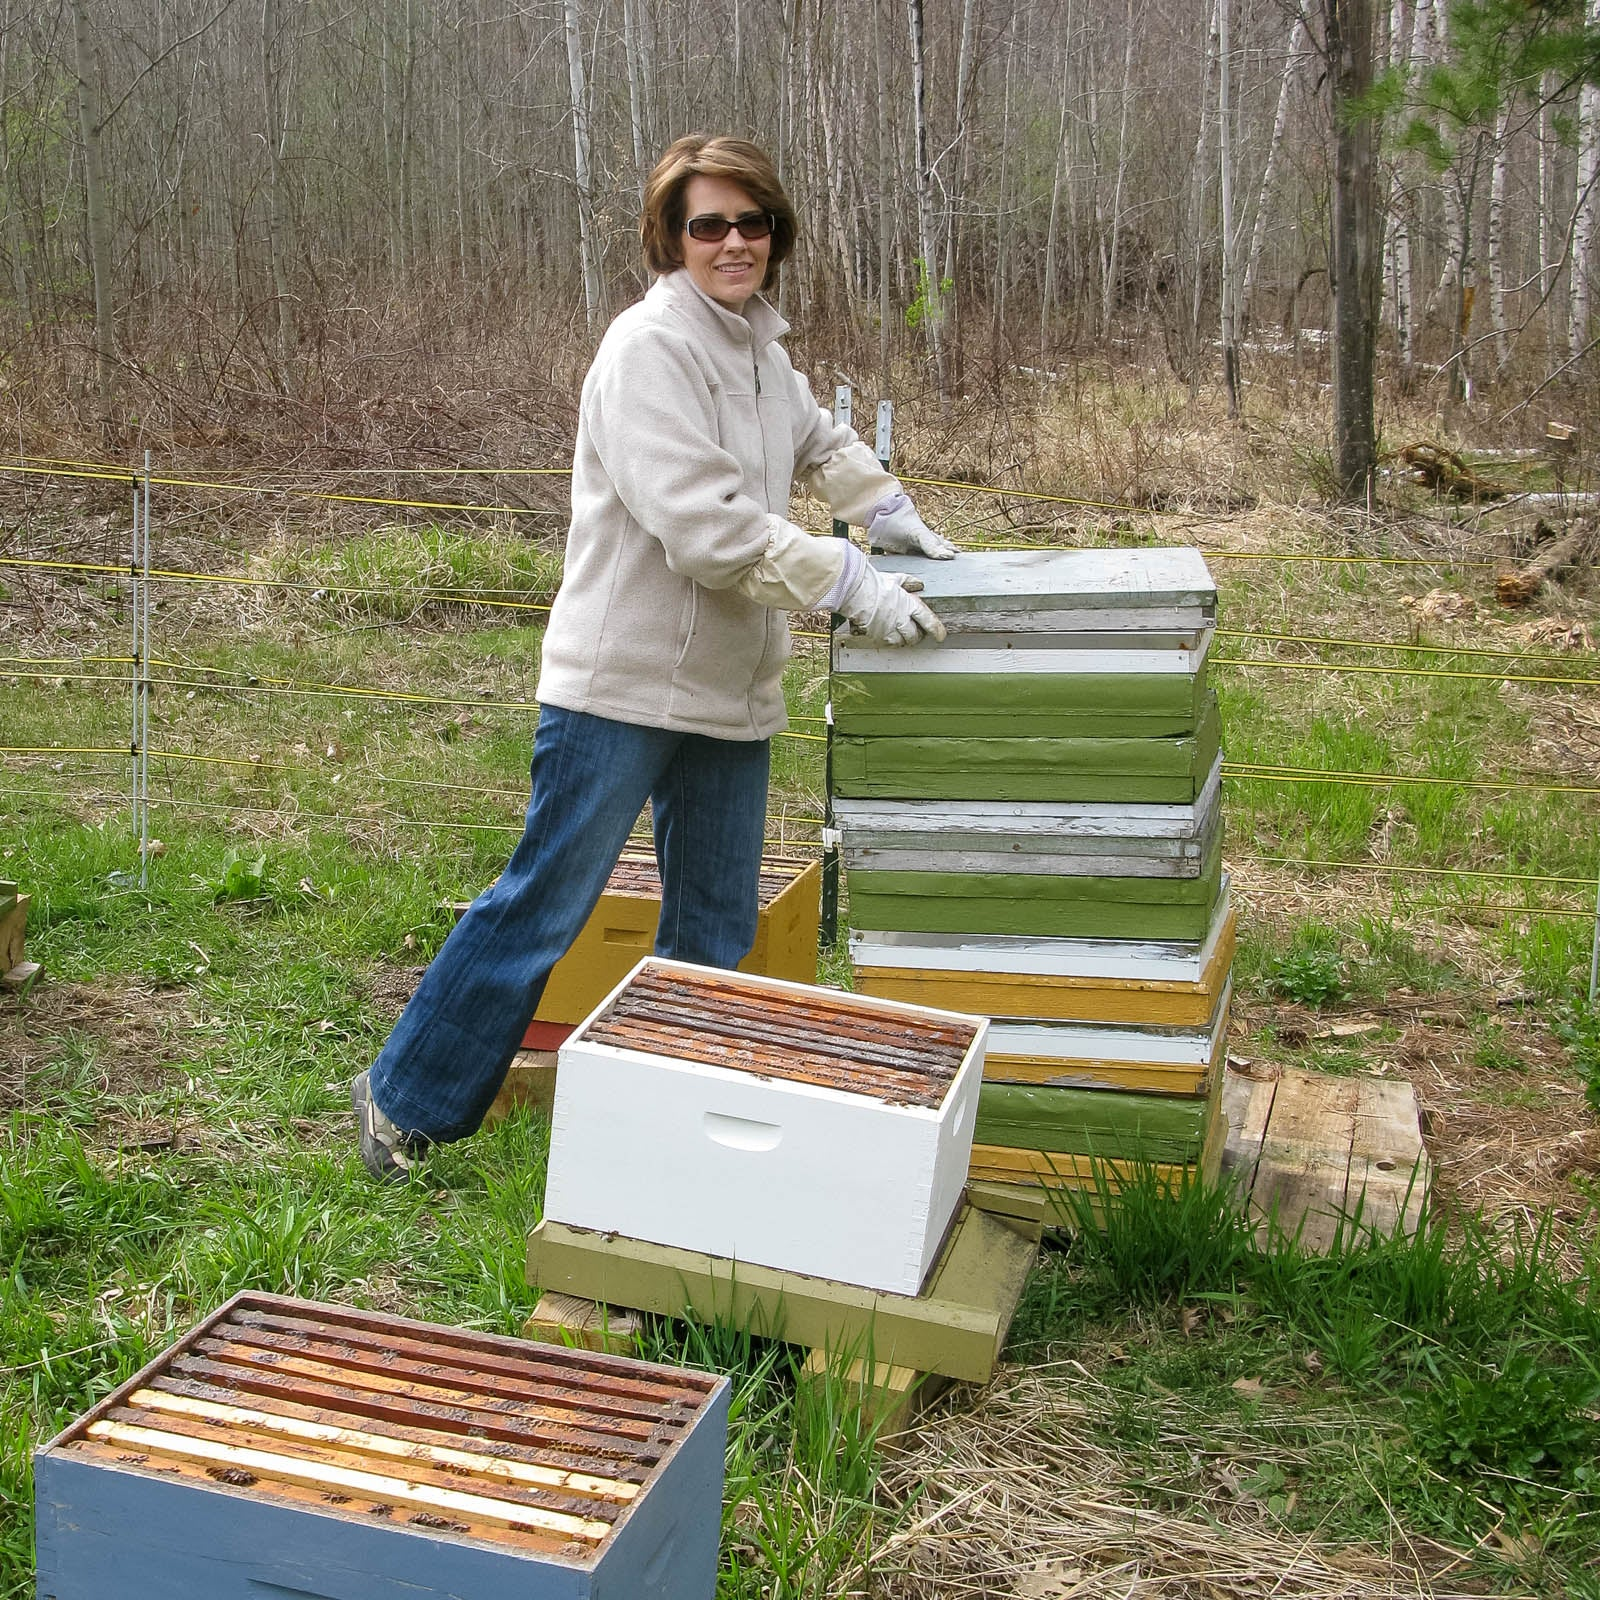 Our Love of Beekeeping